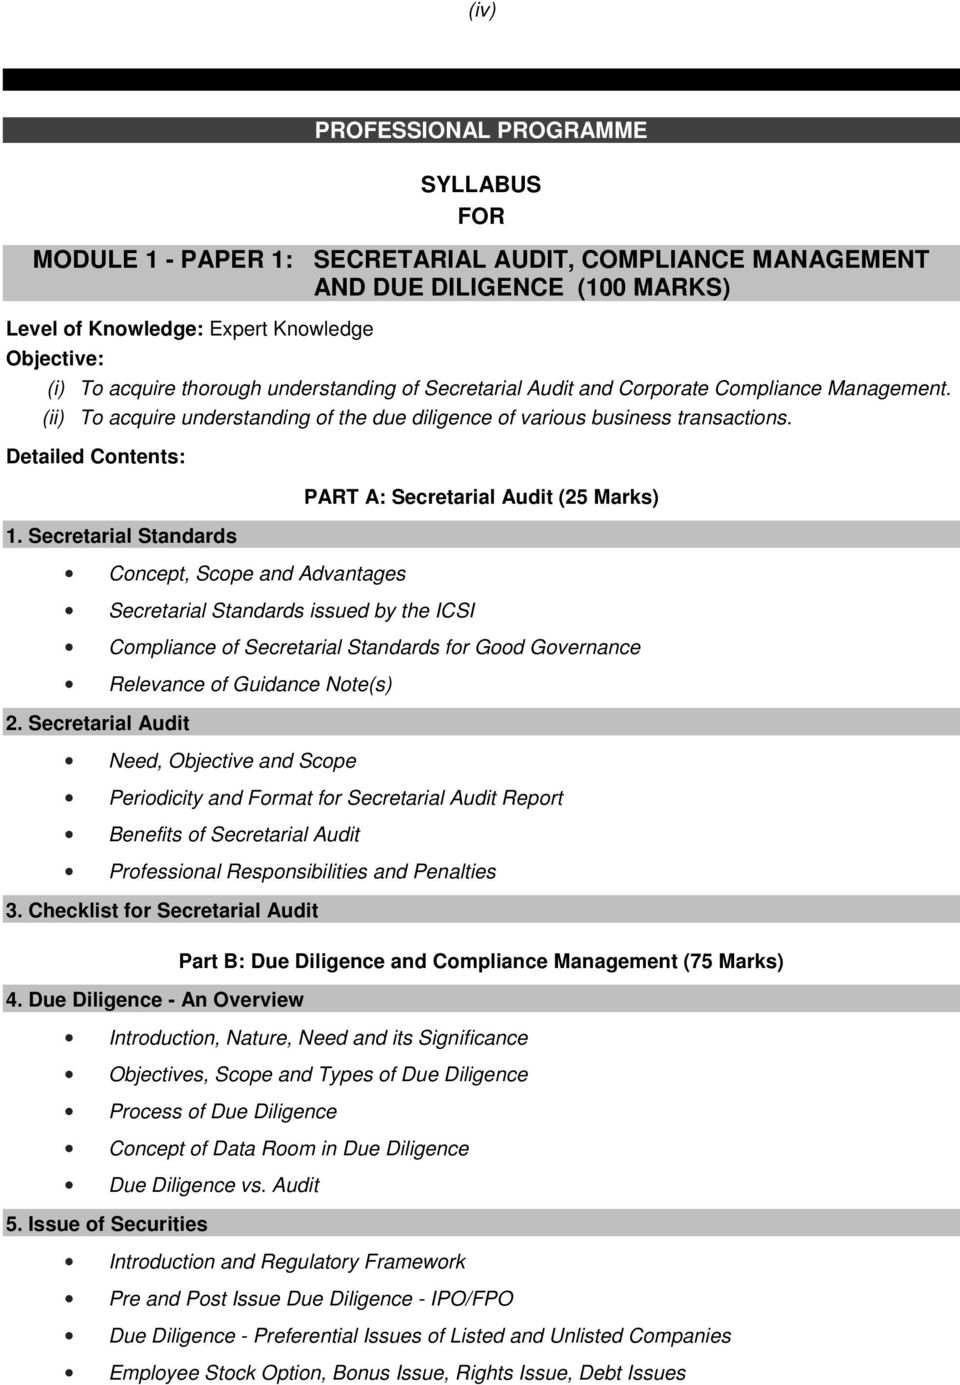 Secretarial Standards Concept, Scope and Advantages Secretarial Standards issued by the ICSI PART A: Secretarial Audit (25 Marks) Compliance of Secretarial Standards for Good Governance Relevance of